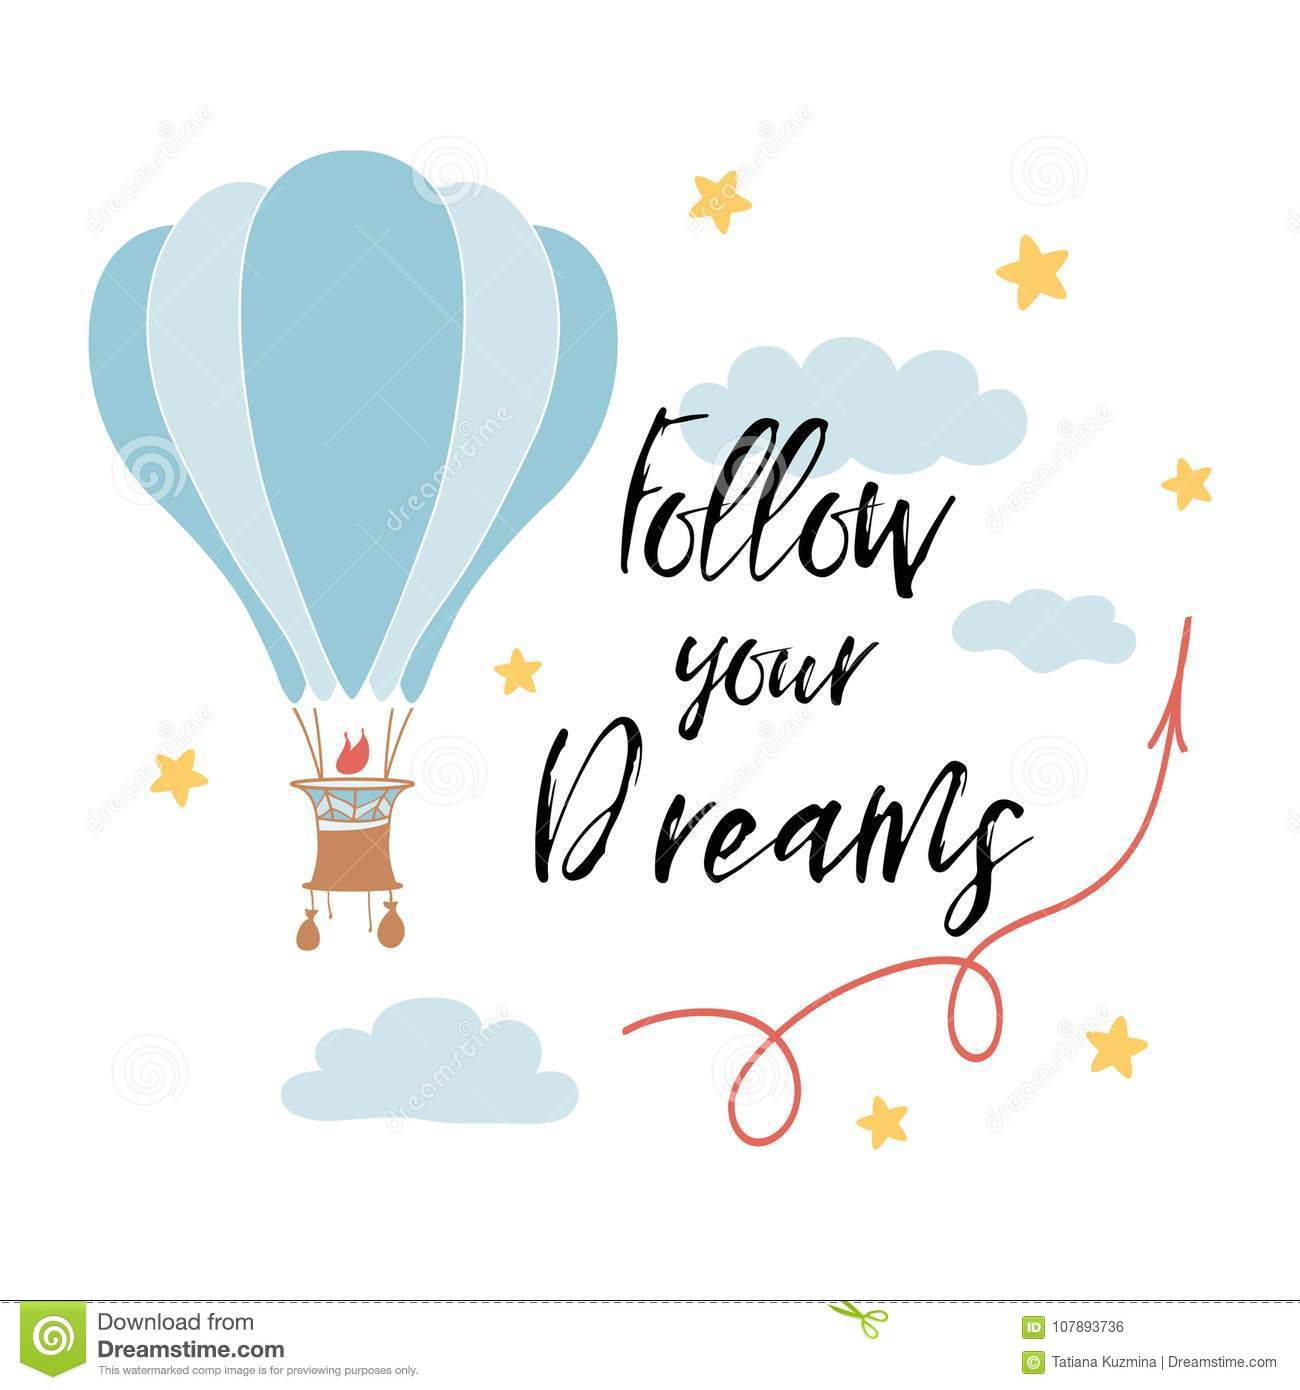 Follow Your Dreams Slogan For Shirt Print Design With Hot Air